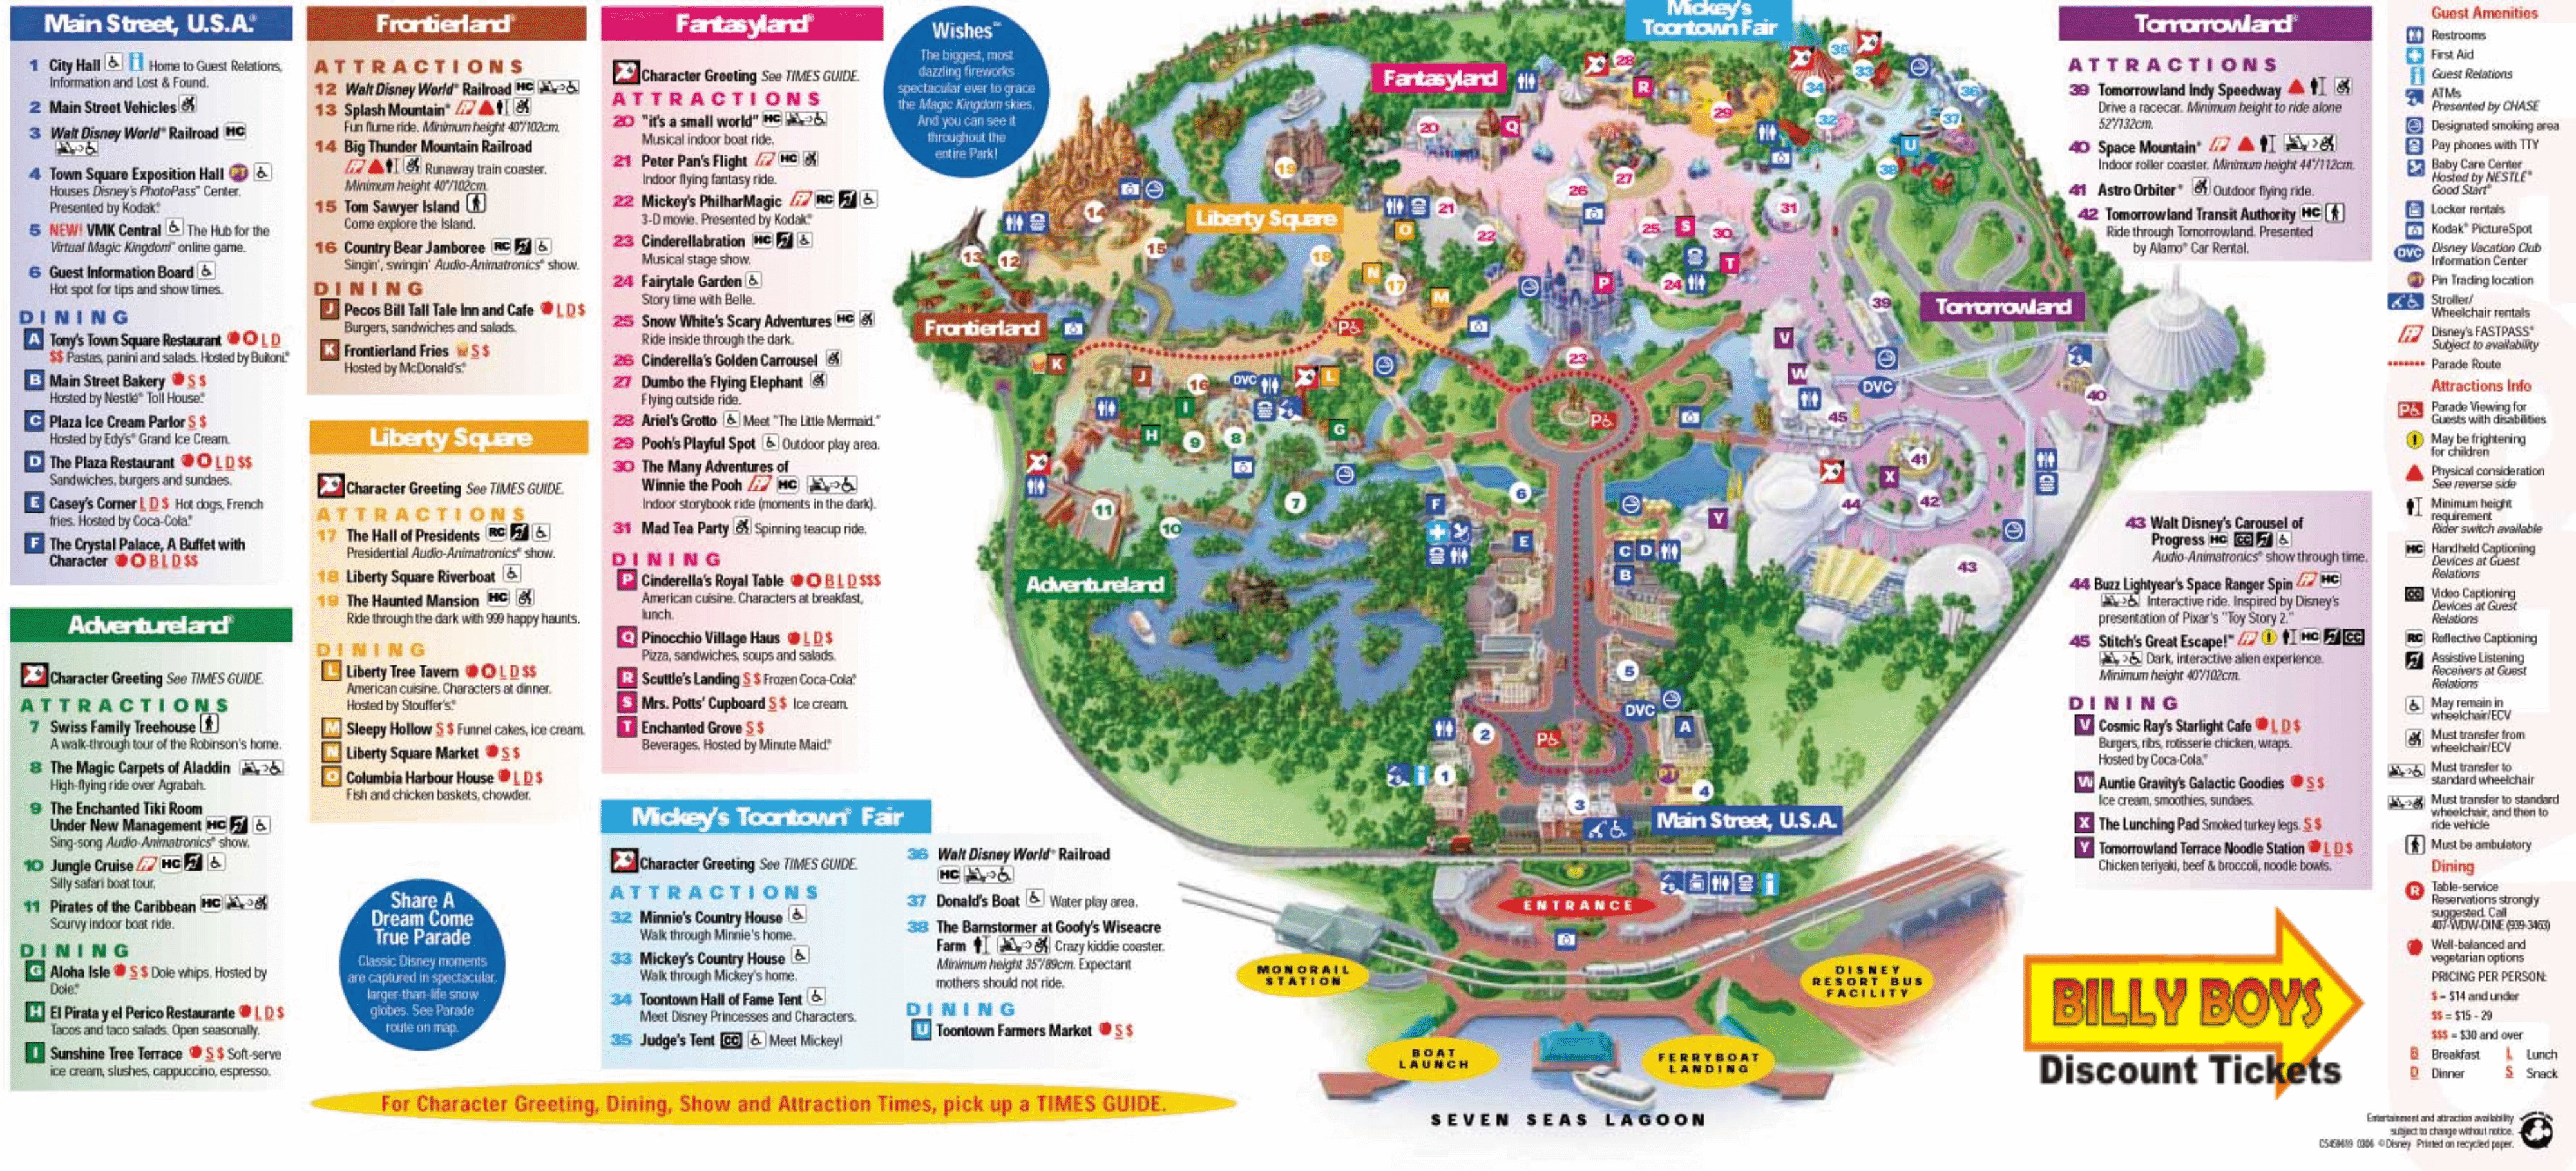 Disney World Florida Map From Ambergontrail 3 - Judecelestin2010 - Disney Florida Maps 2018